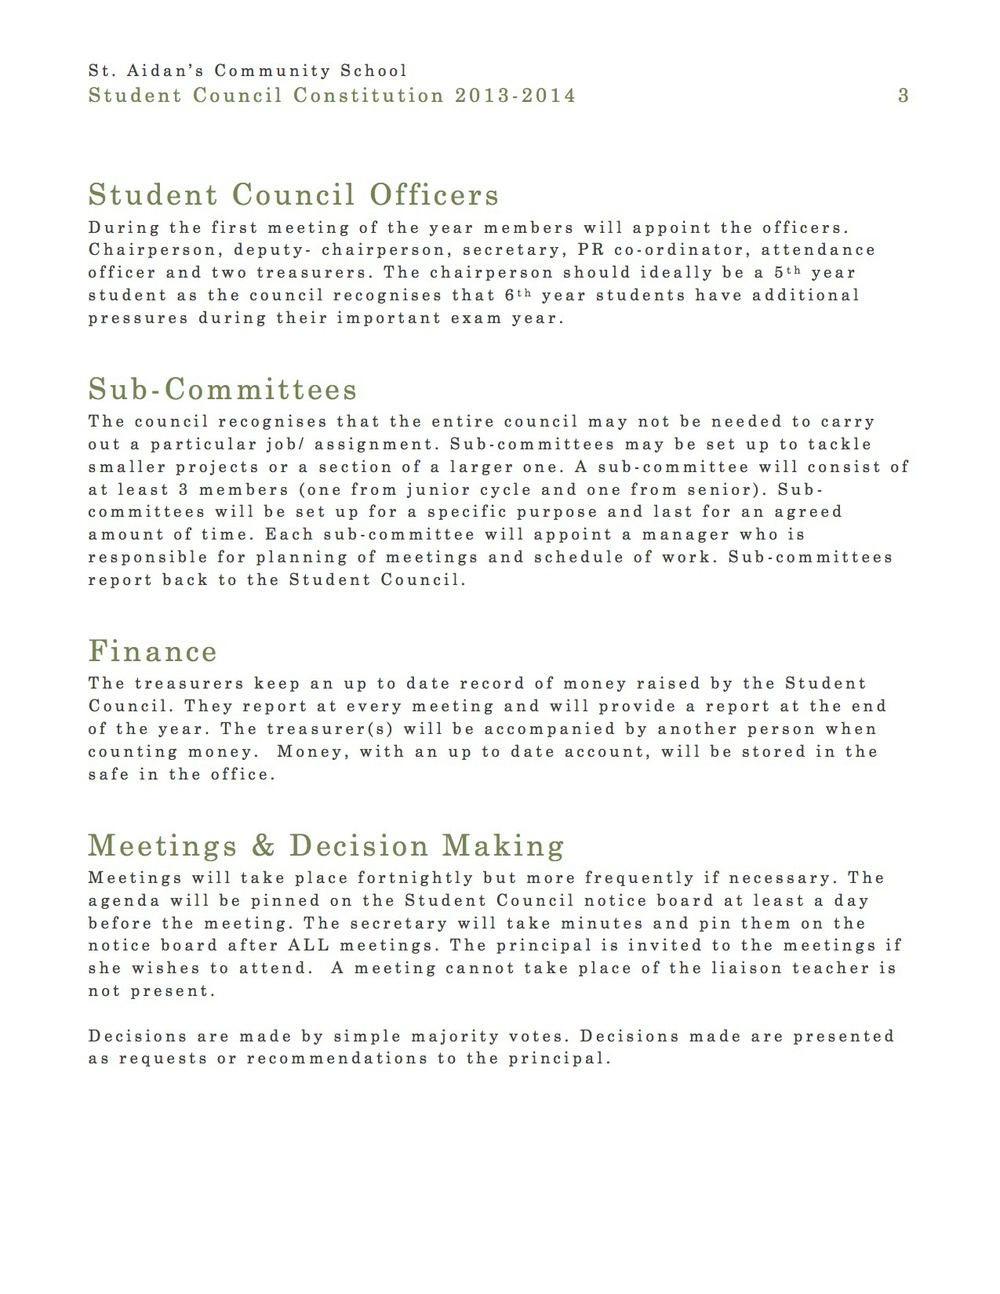 Student Council Constitution PDF3.jpg